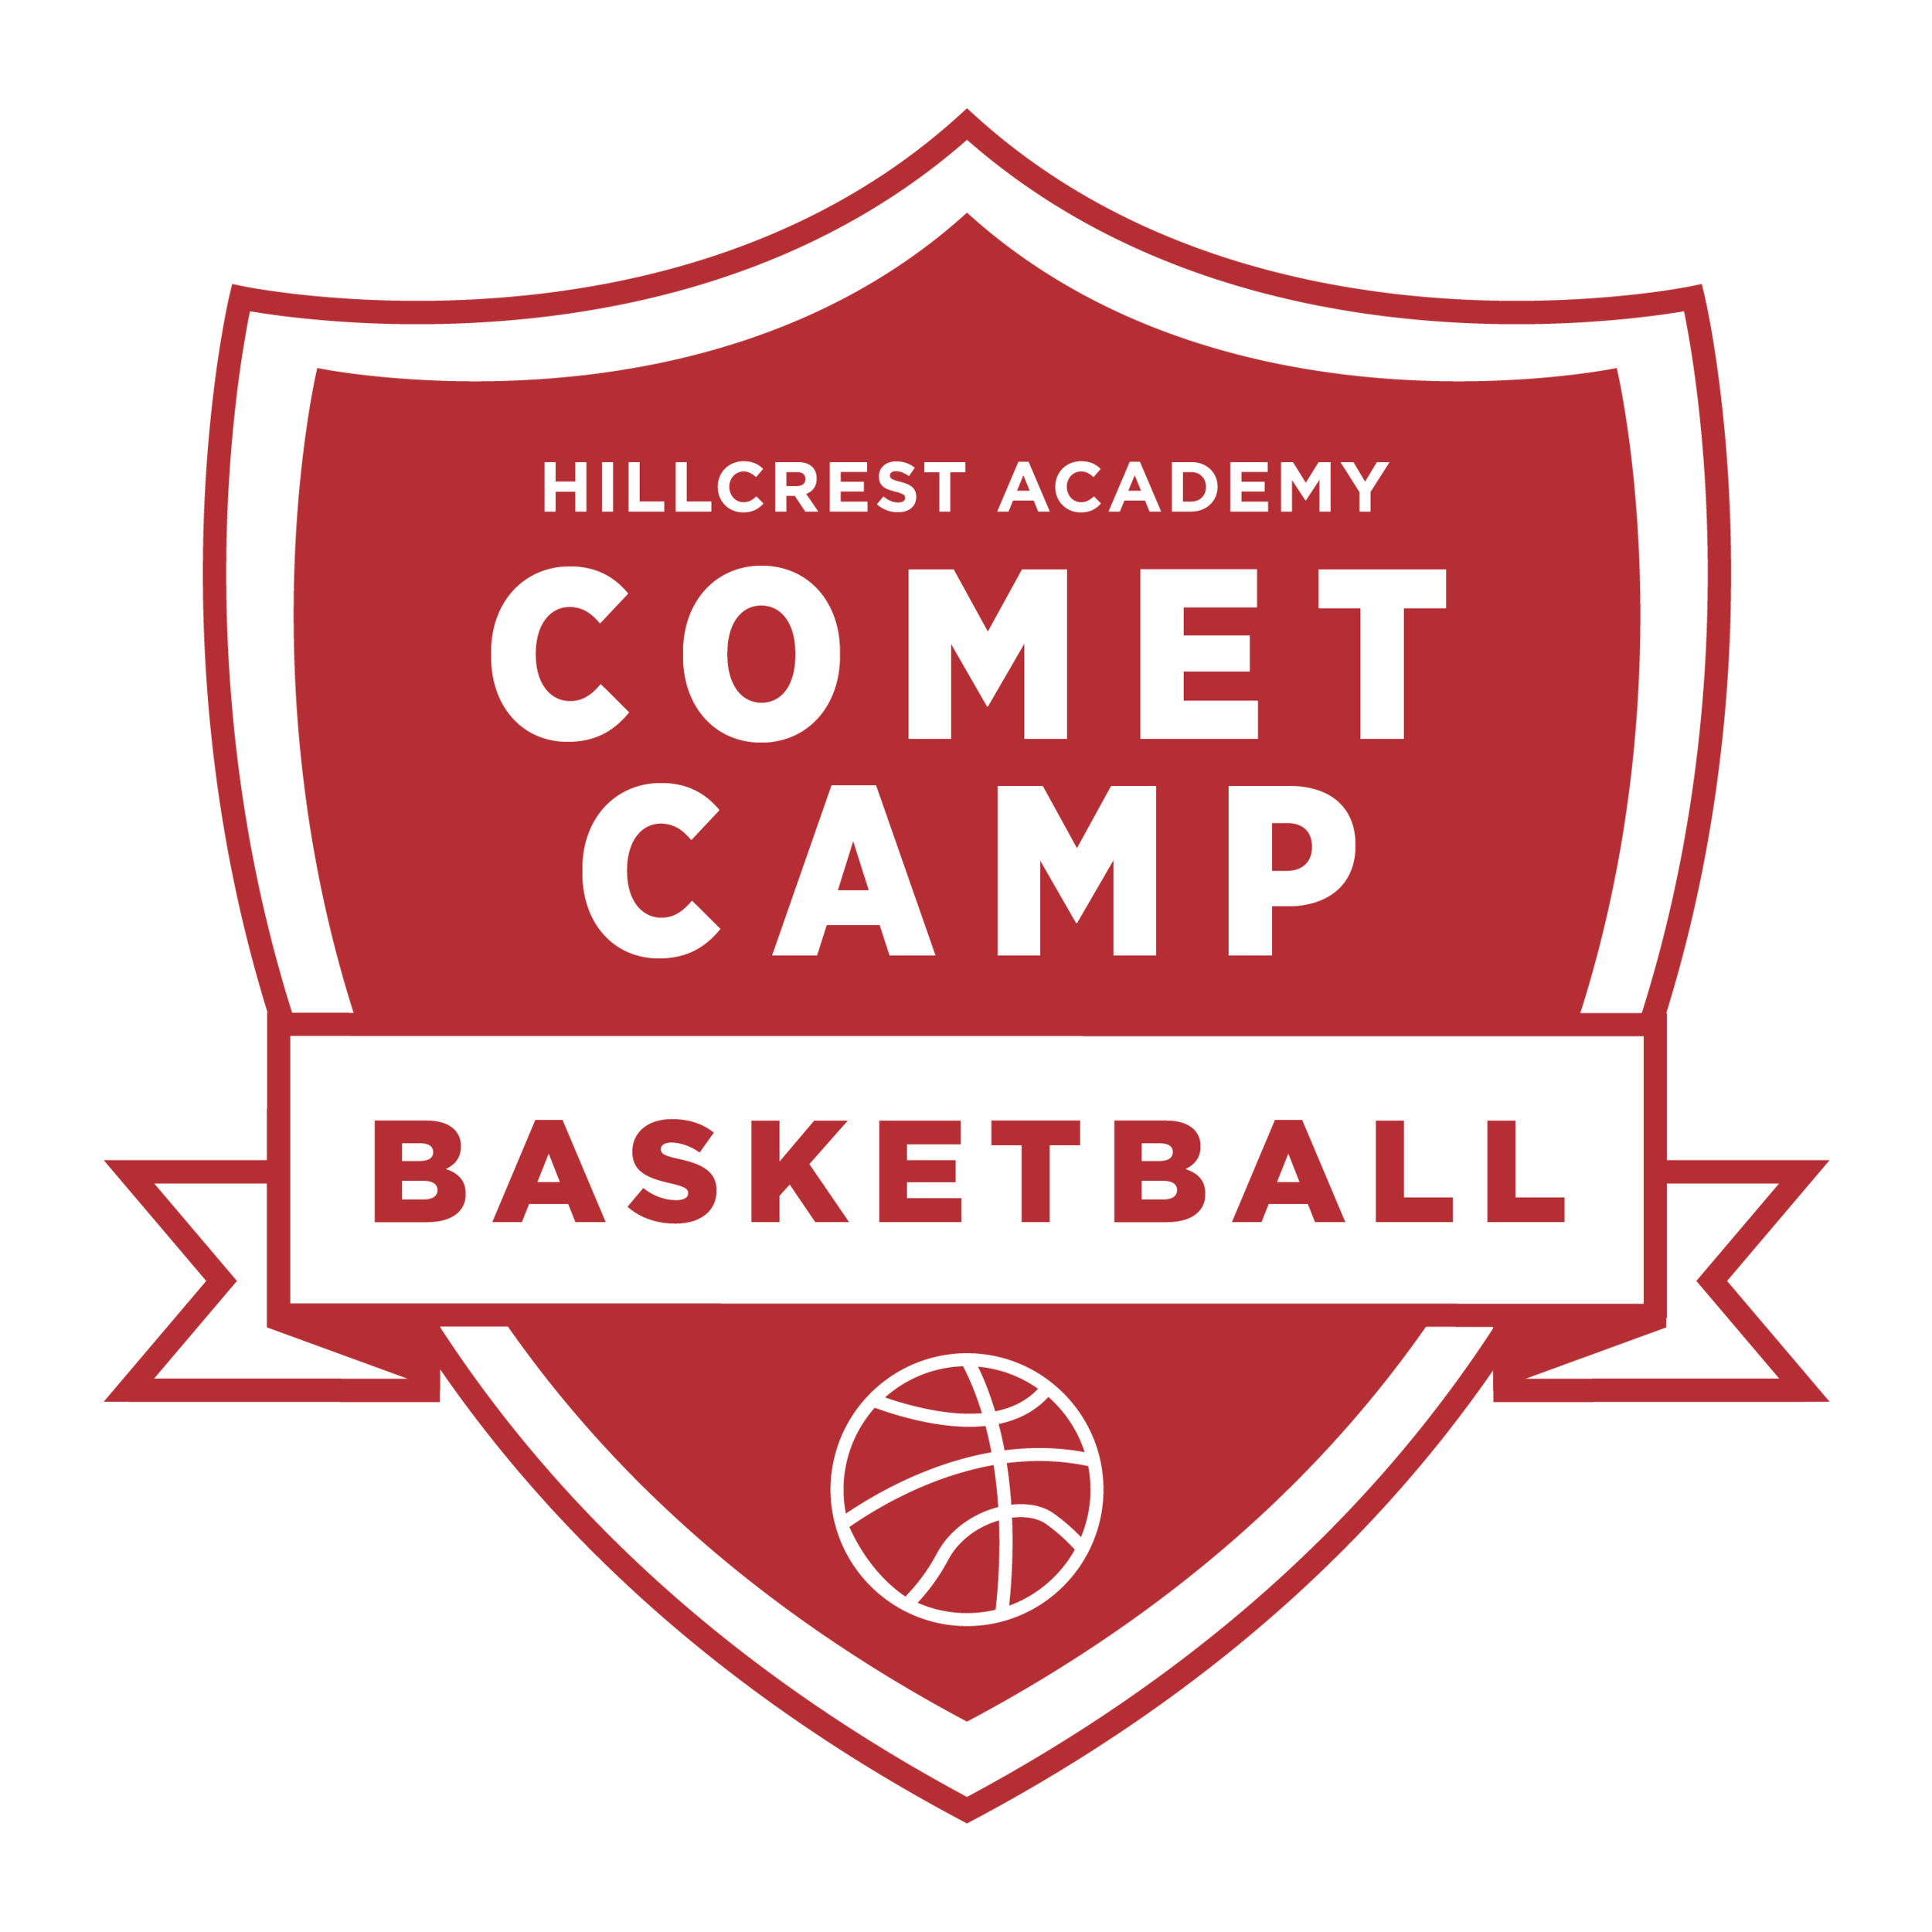 19_011_Comet_Camp_Branding_BBALL_640px.png